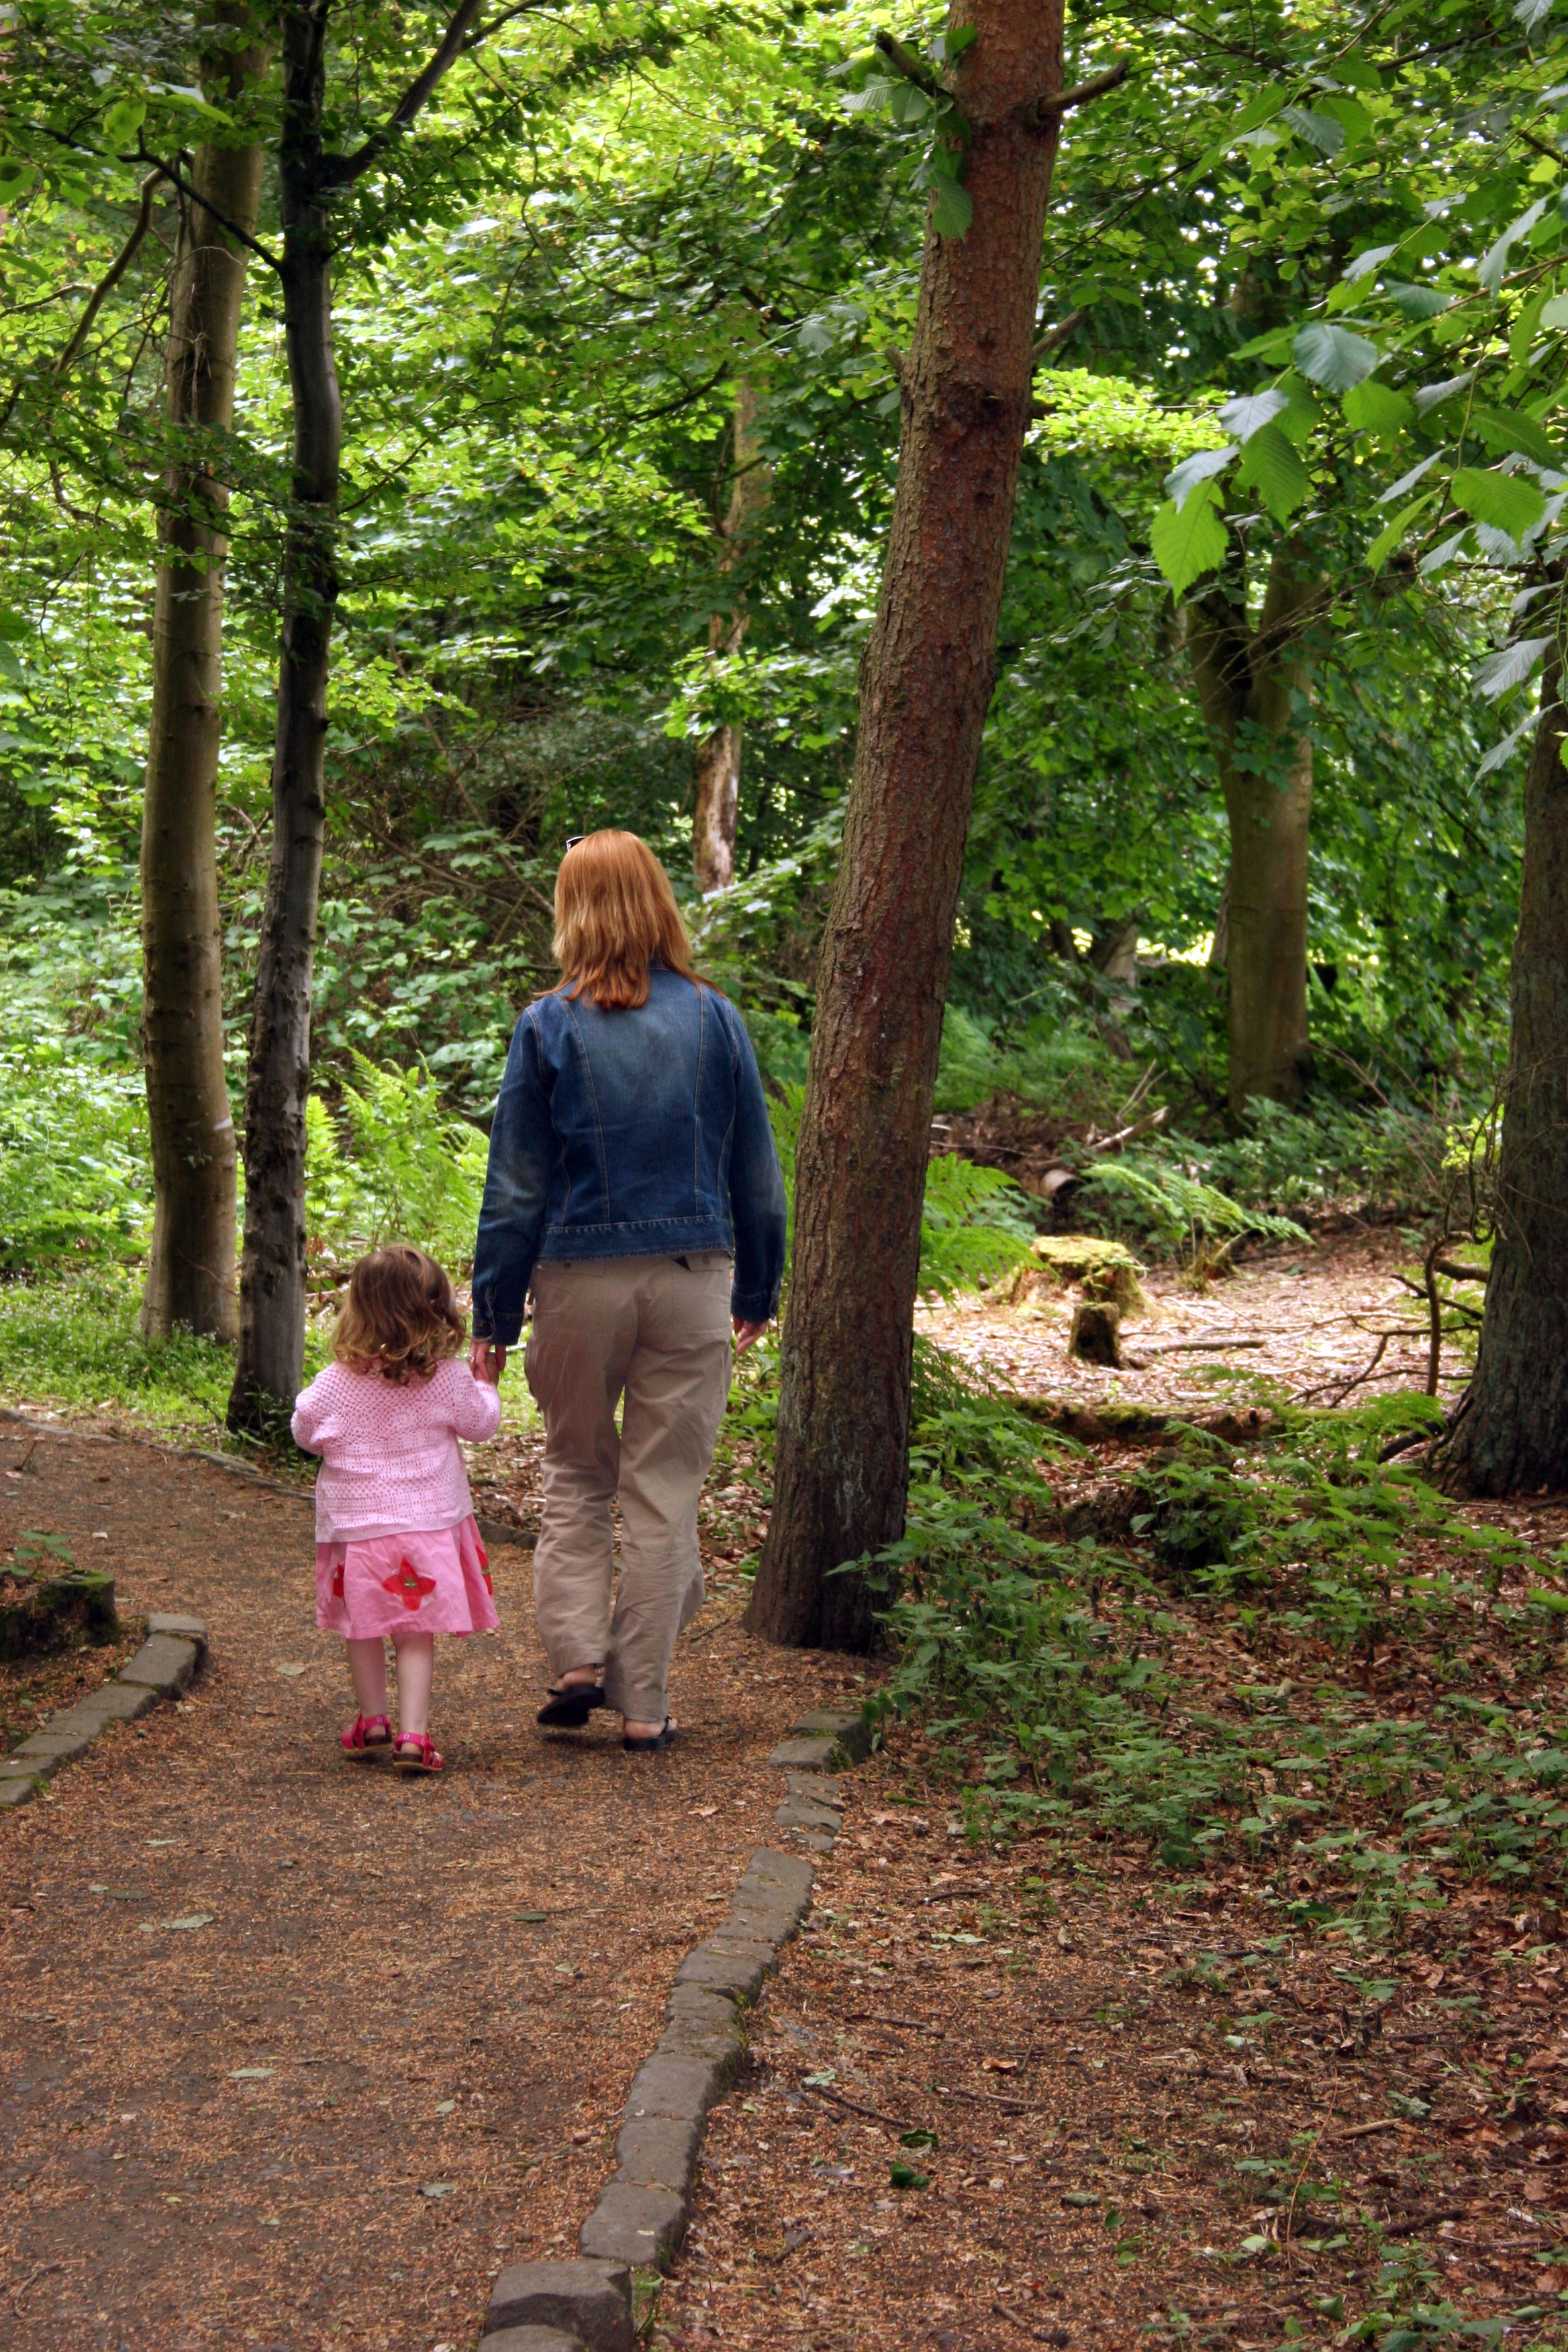 Mother and daughter. Image courtesy of Morguefile.com user hotblack